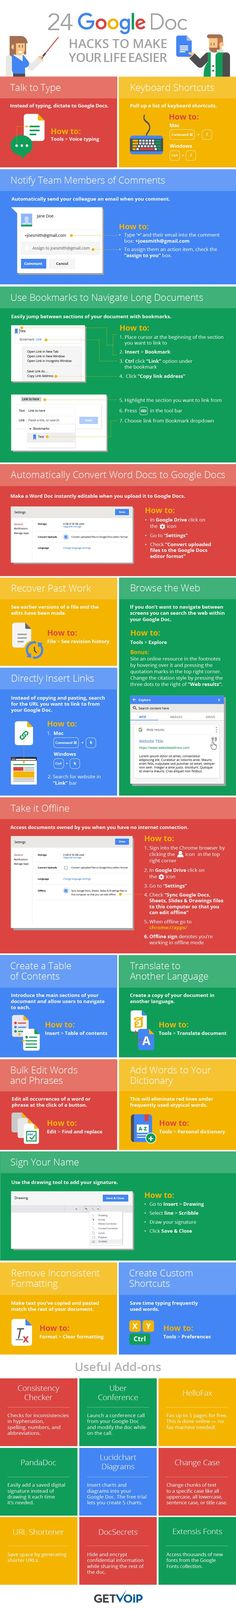 24 Google Doc Hacks to Make Running Your #Business Easier #Infographic